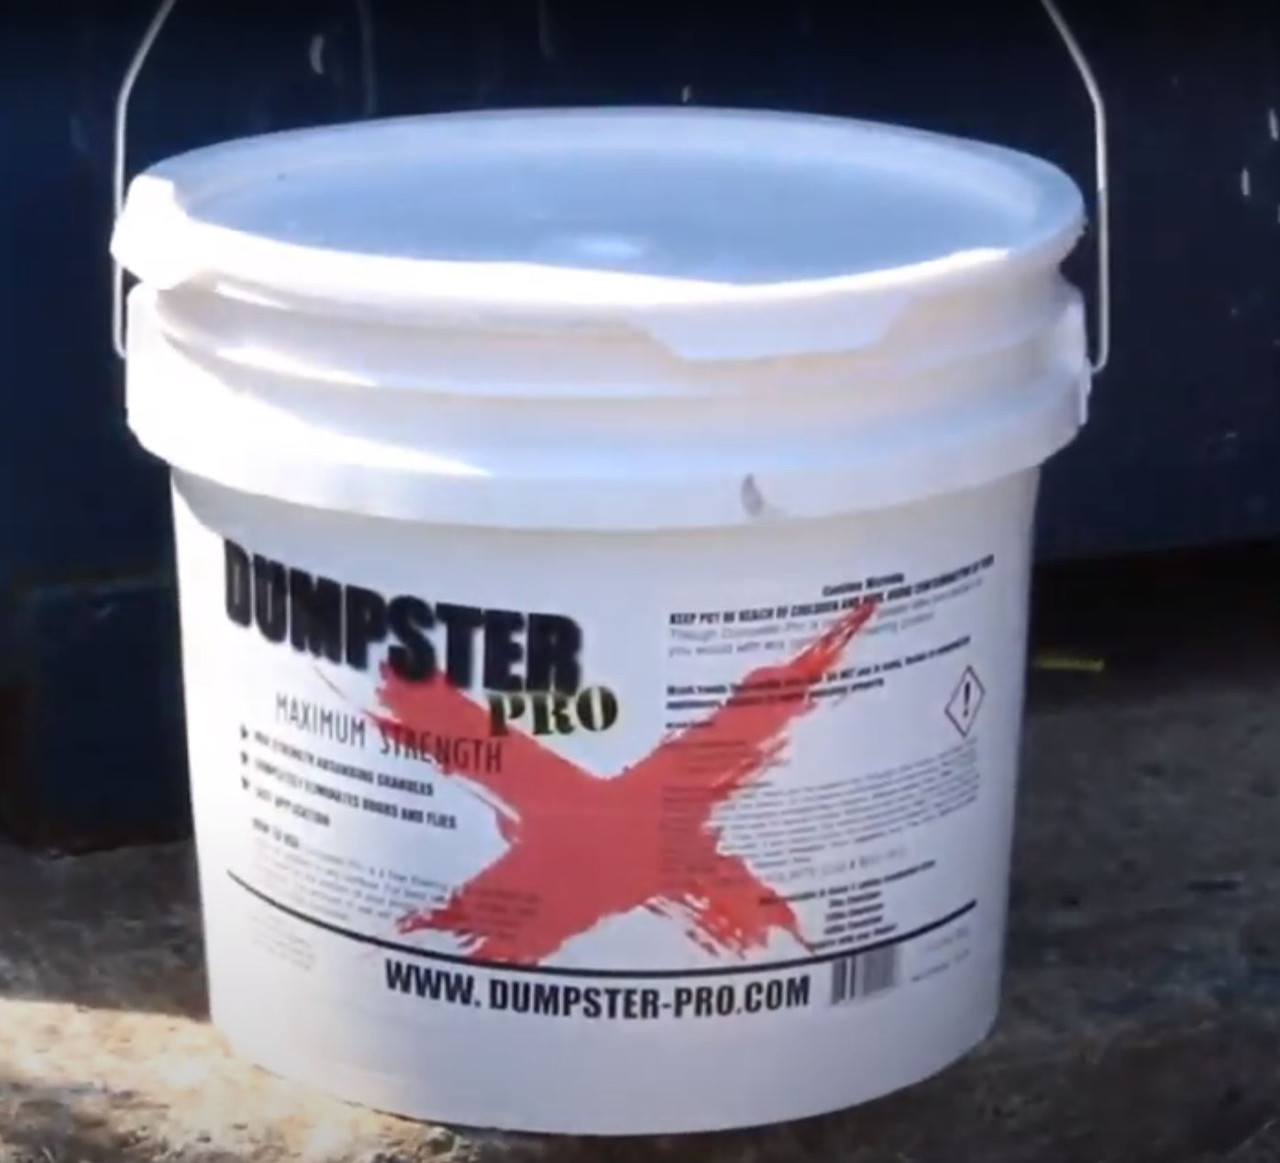 Dumpster Pro - 40 LBS - Garbage Deodorizer Absorbing Granules to Eliminates Odors and Flies